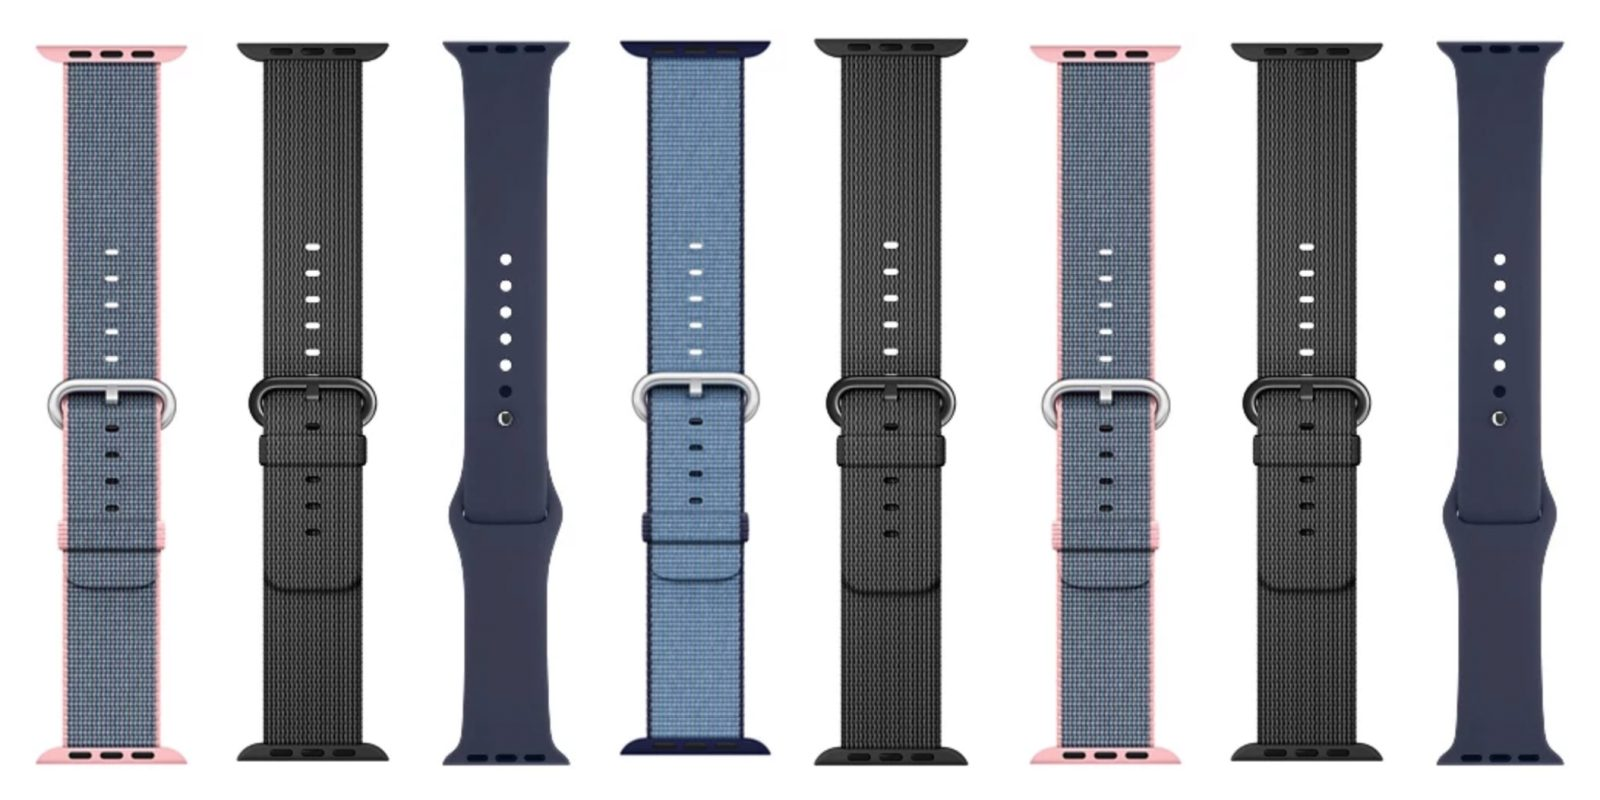 Official Apple Watch bands from $14.50 in various colors/styles (Reg. $49)